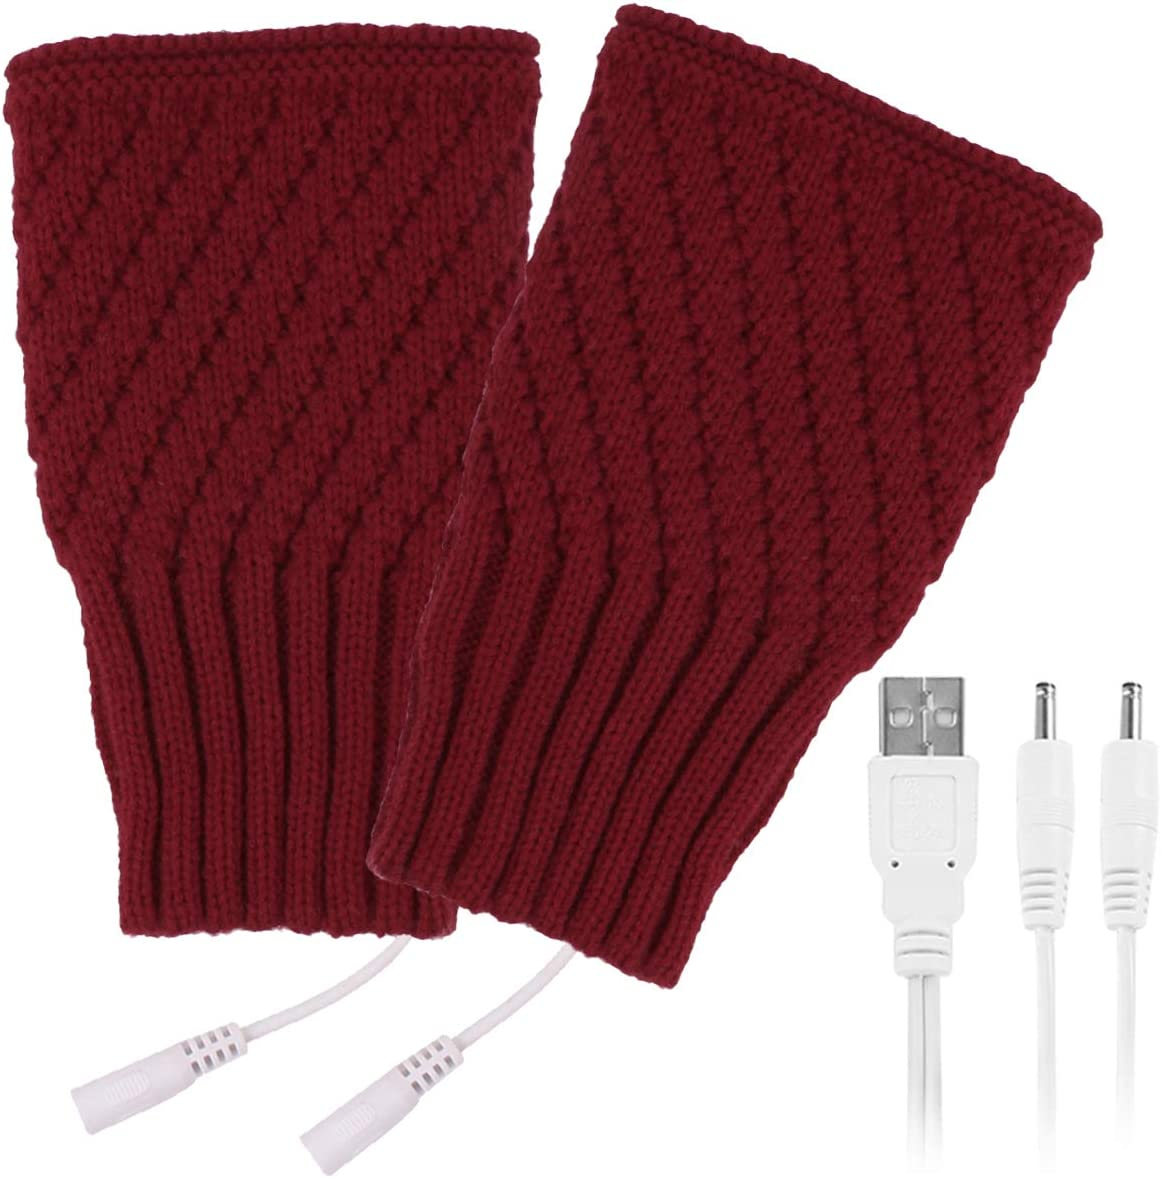 Petyoung Men USB Heated Glove Half Finger Knitted Hand Warmer Winter Knitted Warm Mitten Suitable for Typing Working